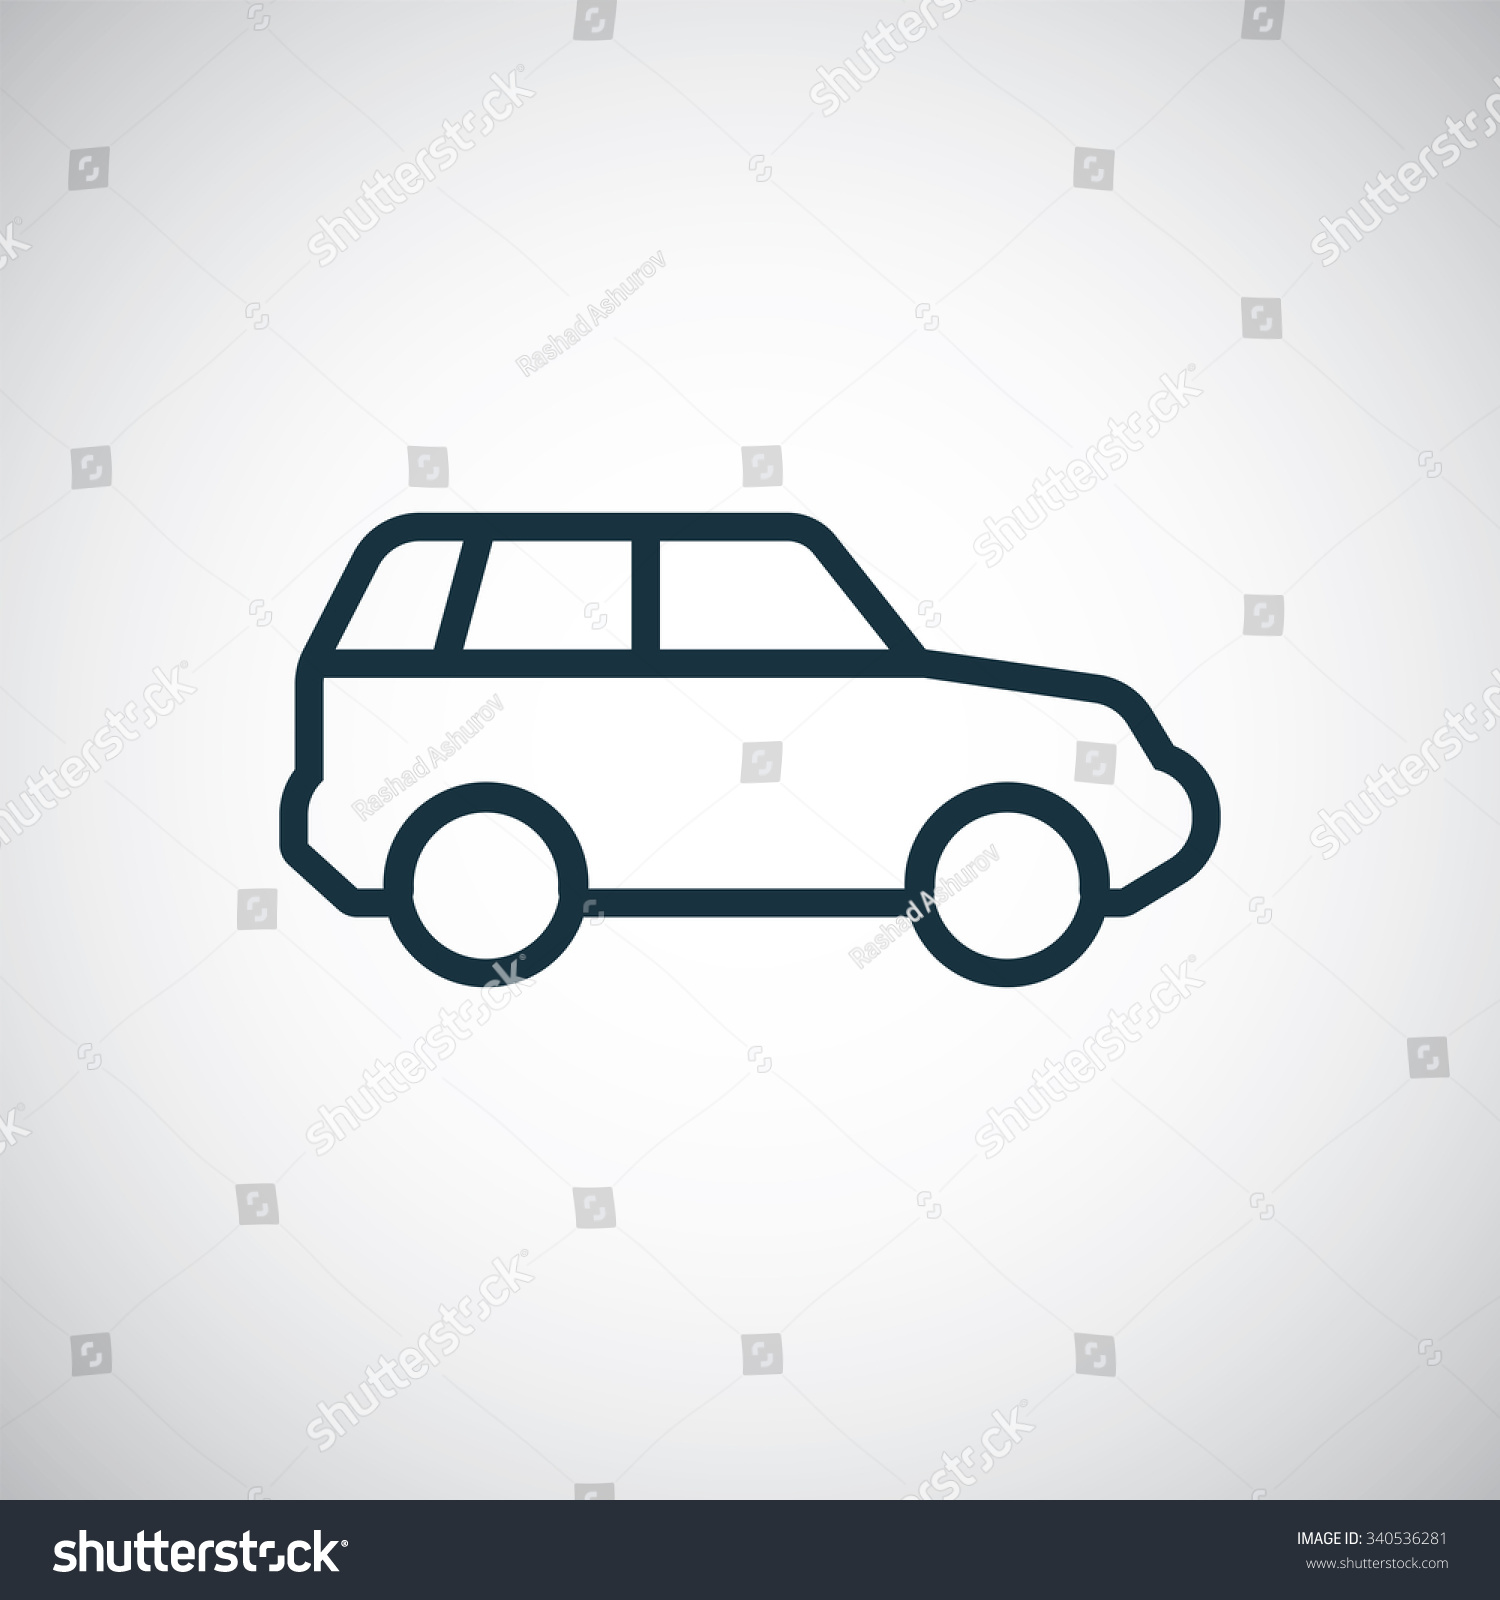 Suv Outline Thin Flat Digital Icon For Web And Mobile Stock